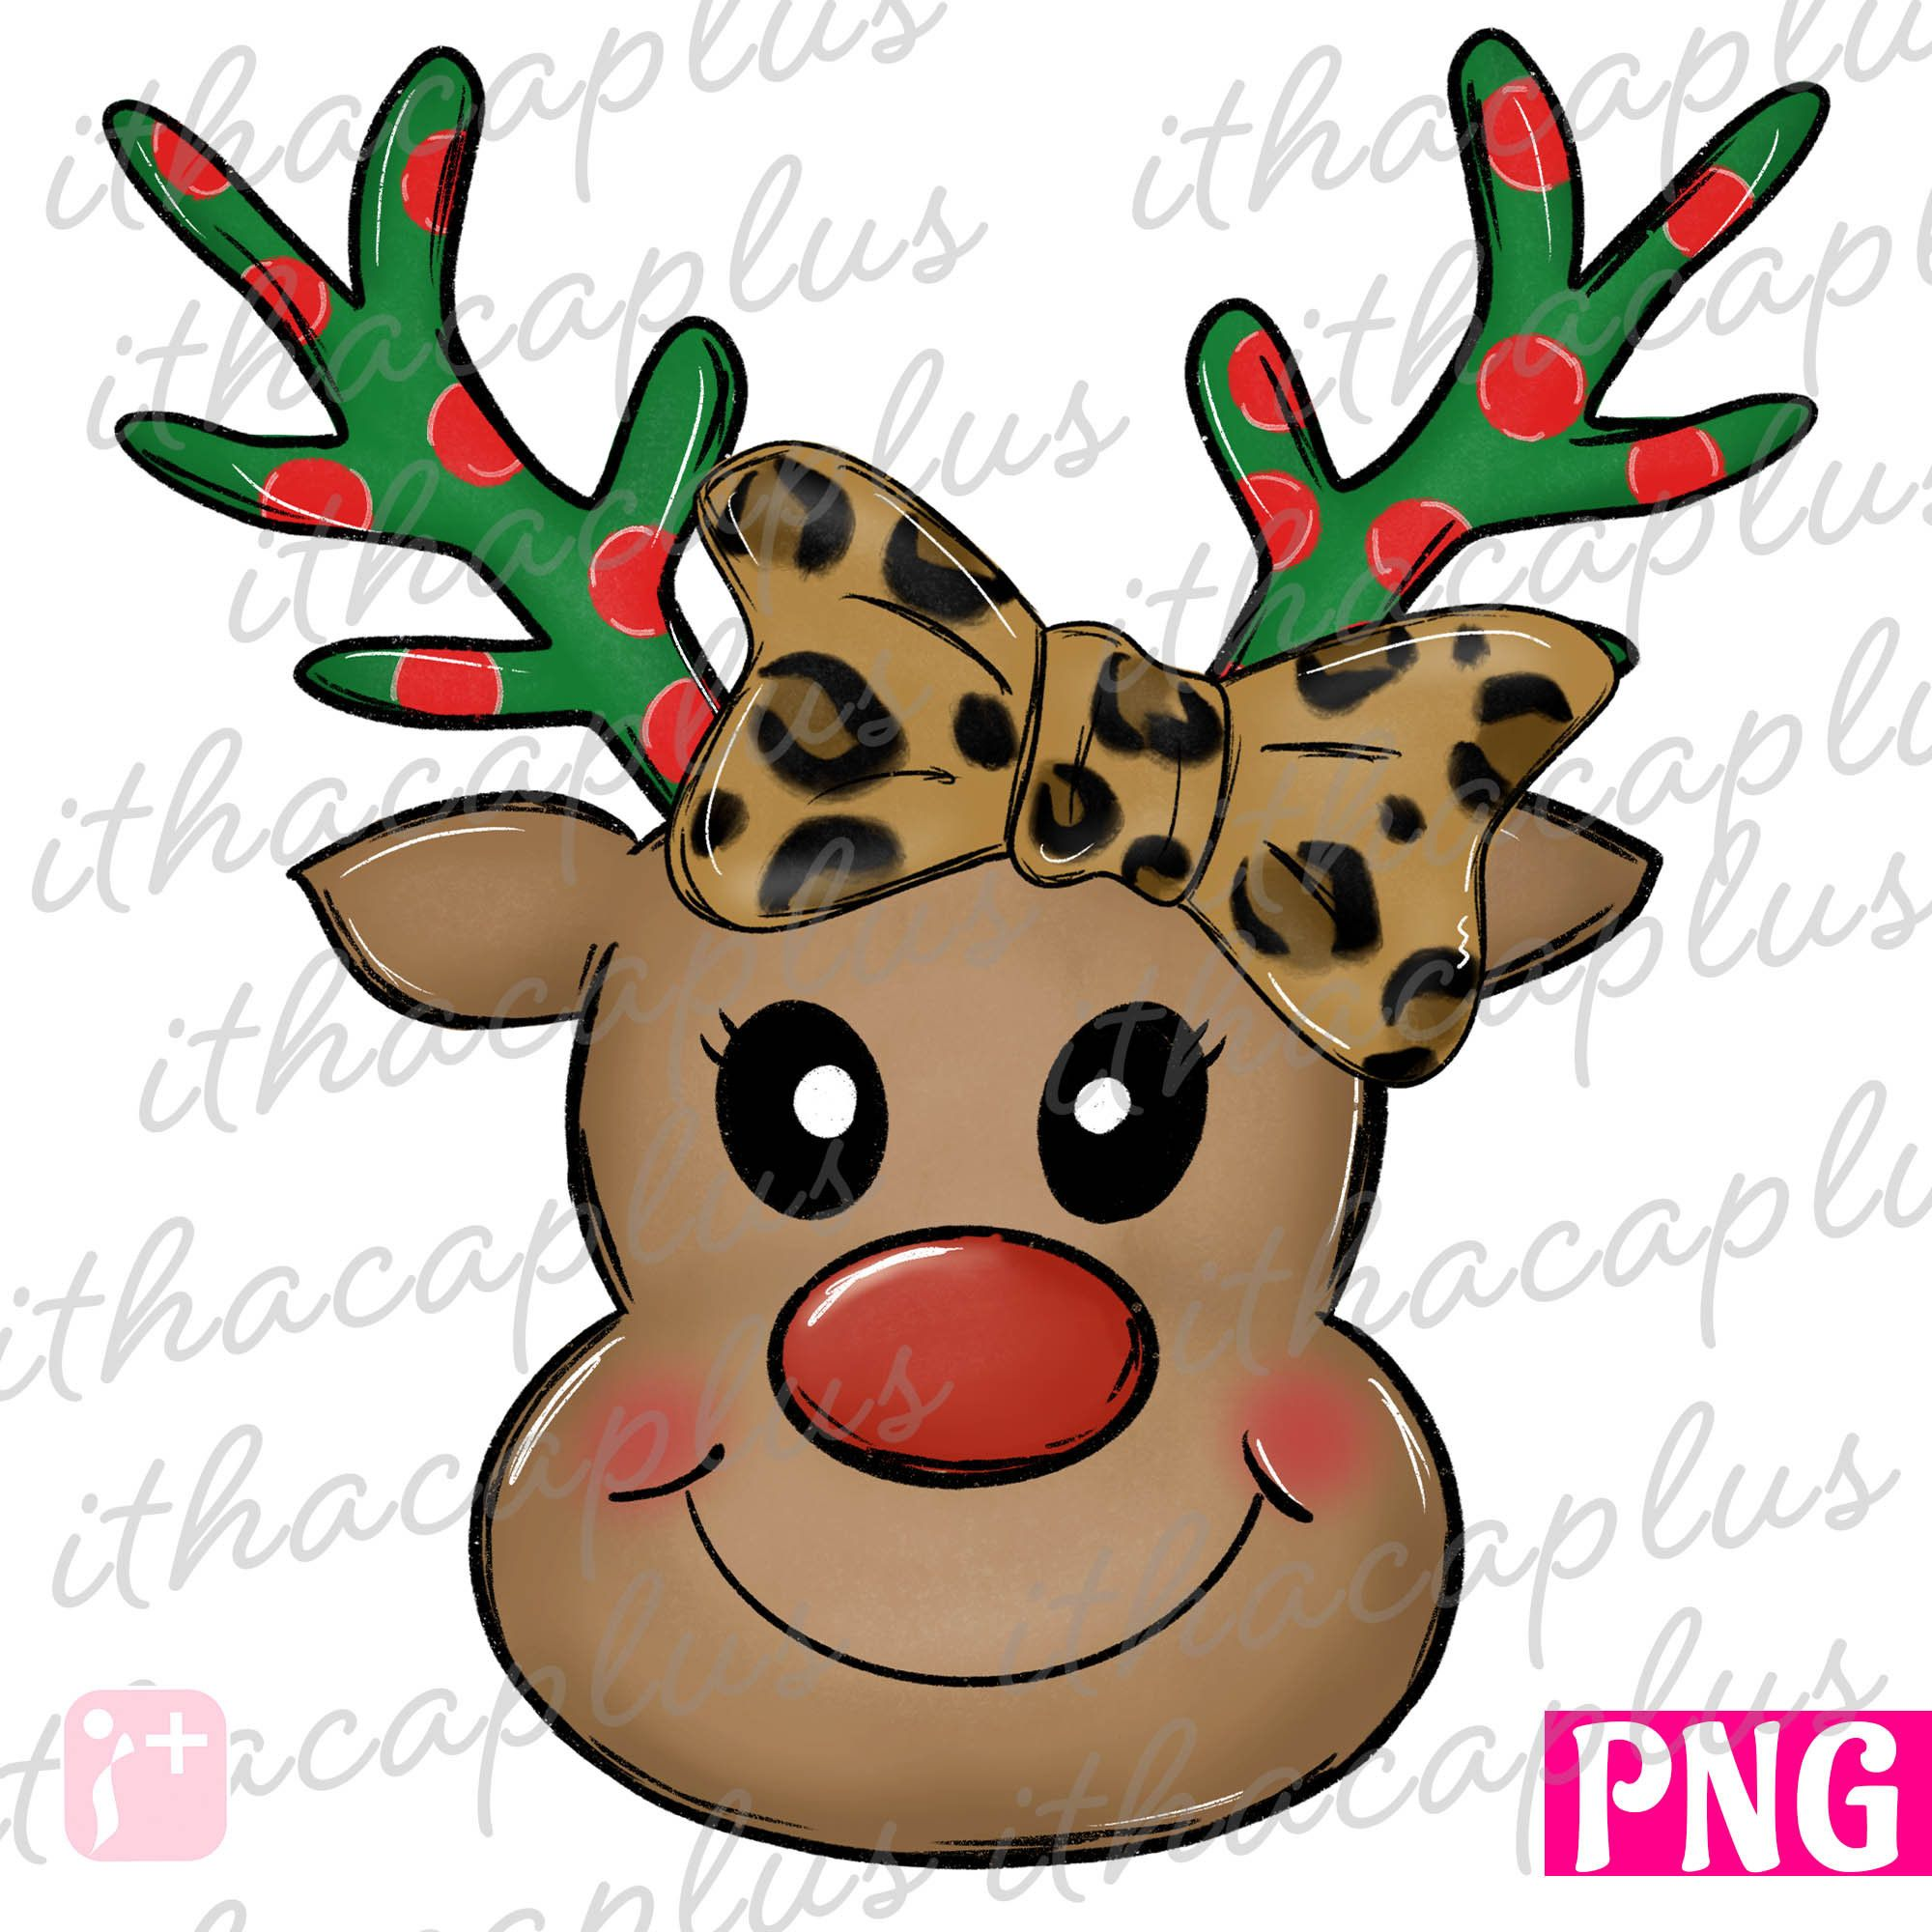 Christmas Png Leopard Bow Reindeer Rudolph Png Sublimation Cute Christmas Deer Clipart Digital Printable Xmas Reindeer Png In 2021 Reindeer Drawing Christmas Stickers Letter D Crafts